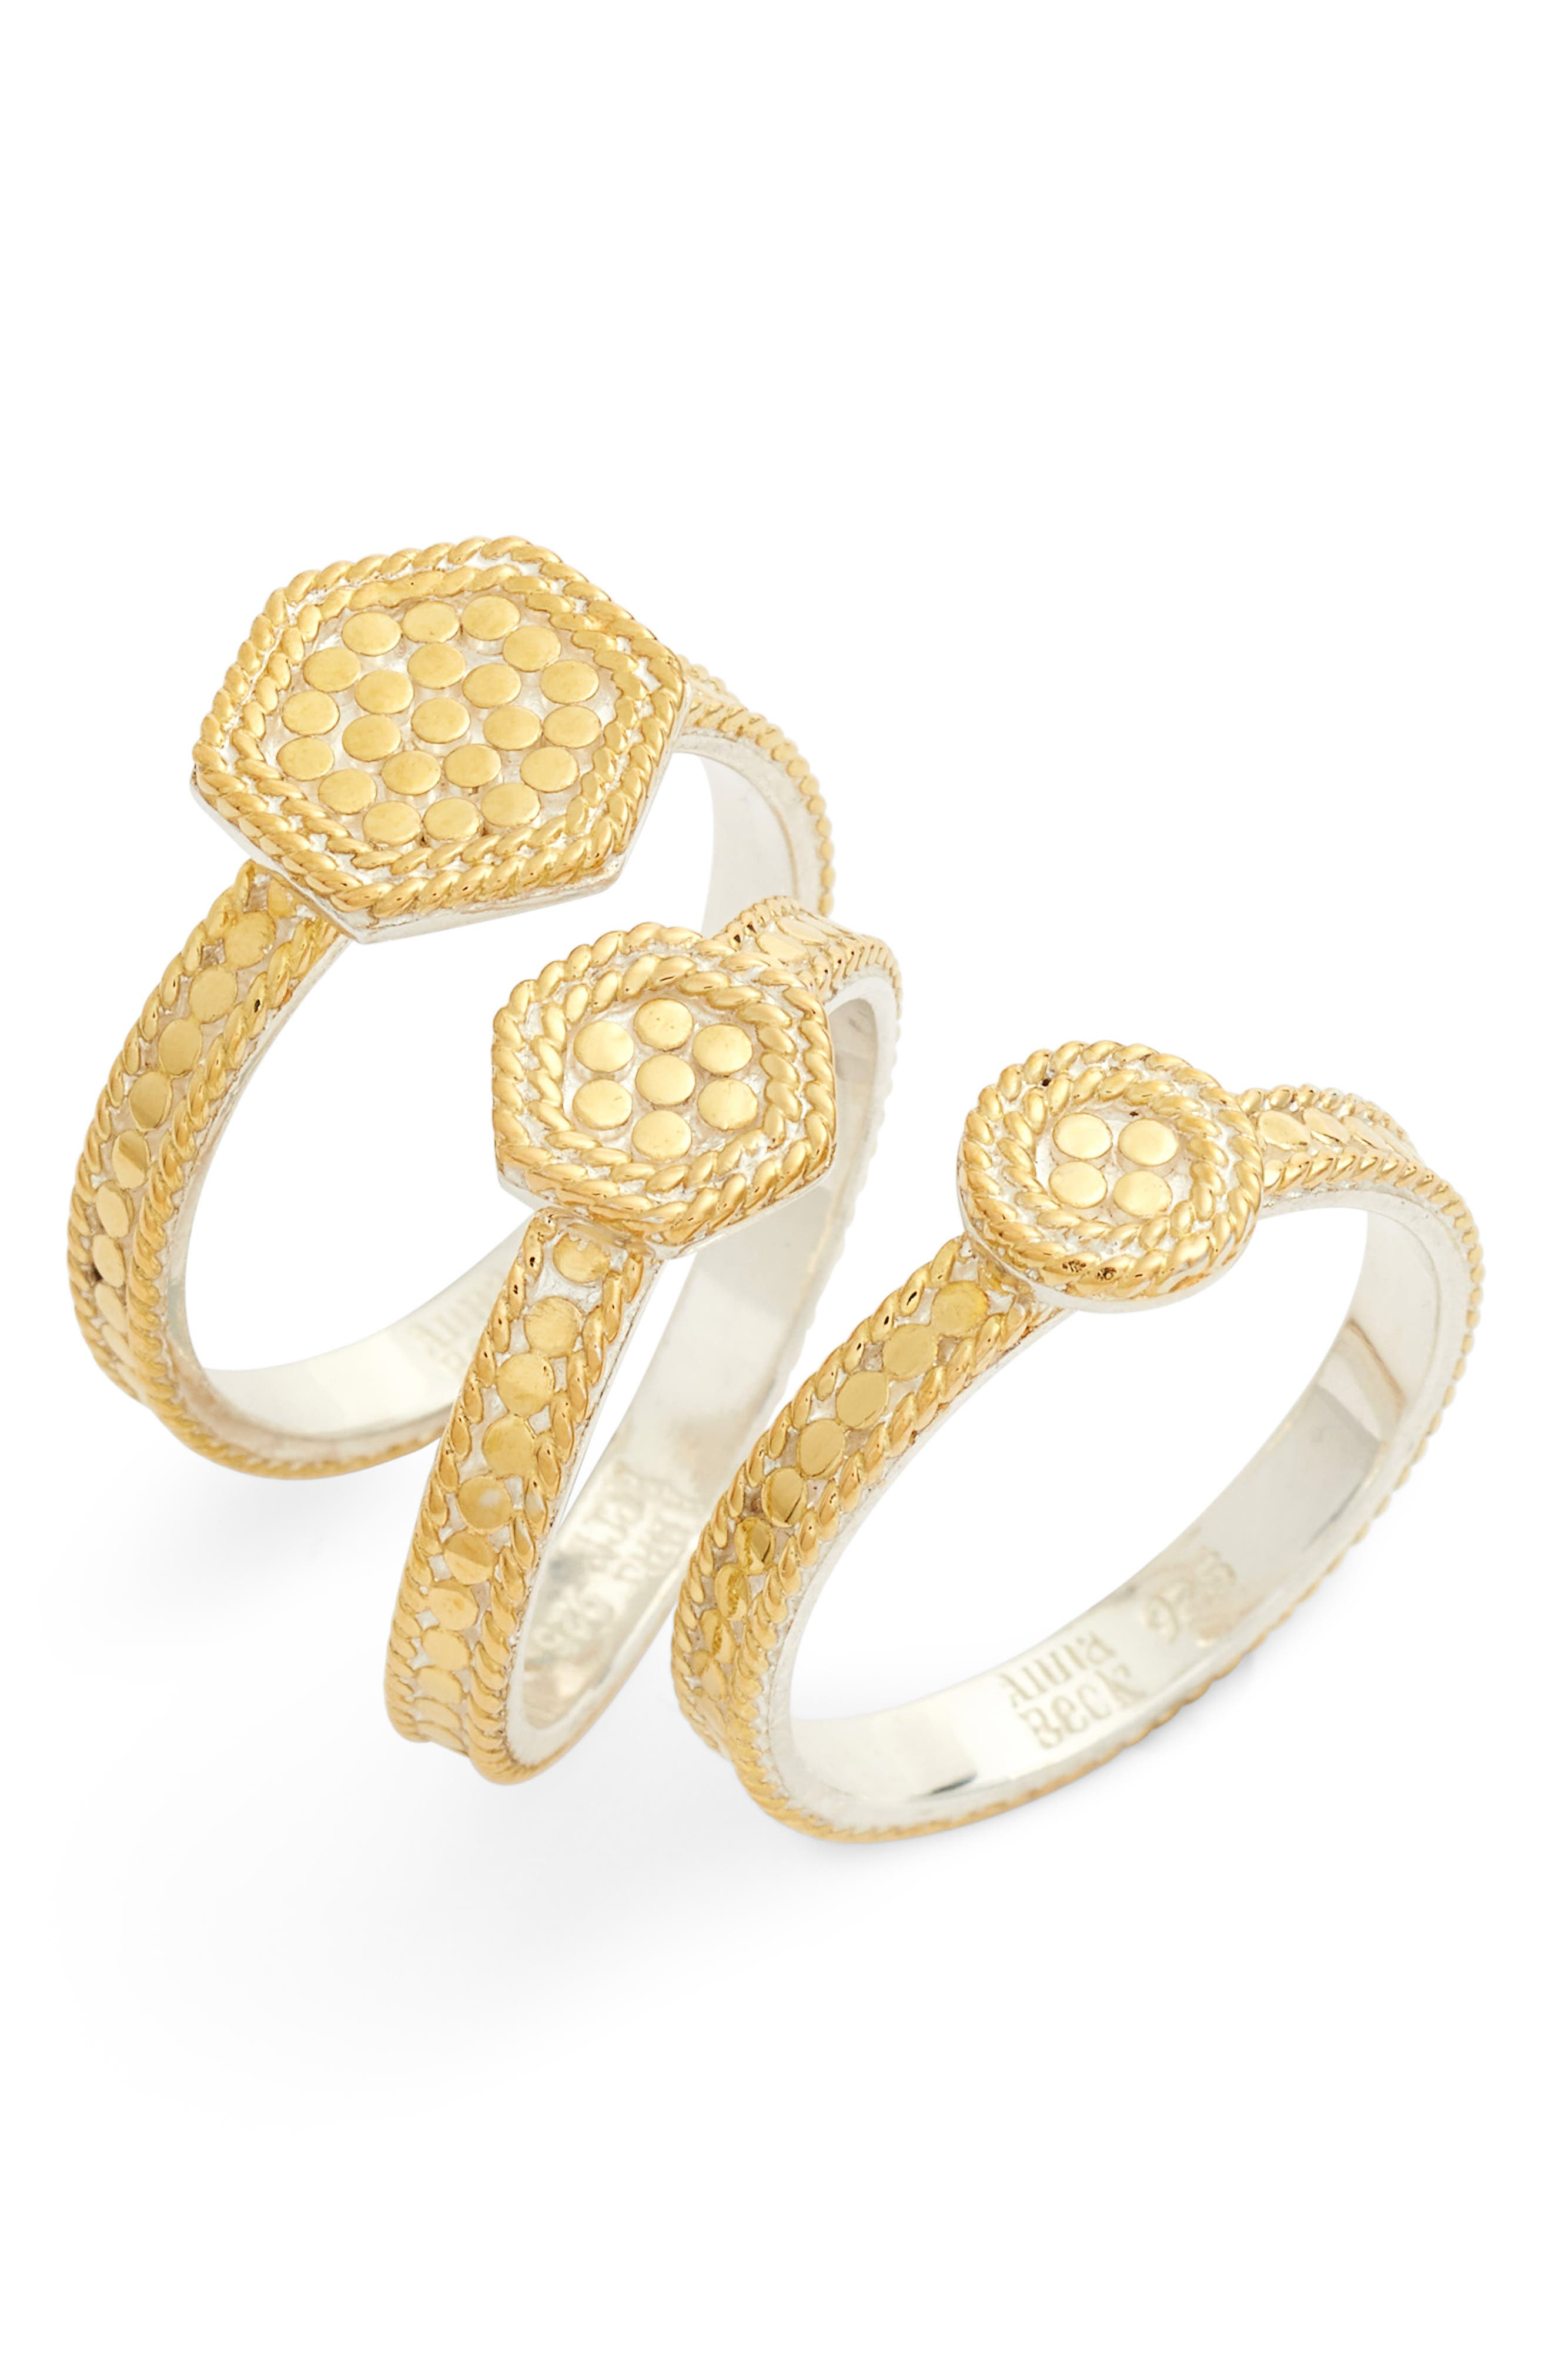 Gold Plate Geometric Set of 3 Stacking Rings,                             Main thumbnail 1, color,                             Gold